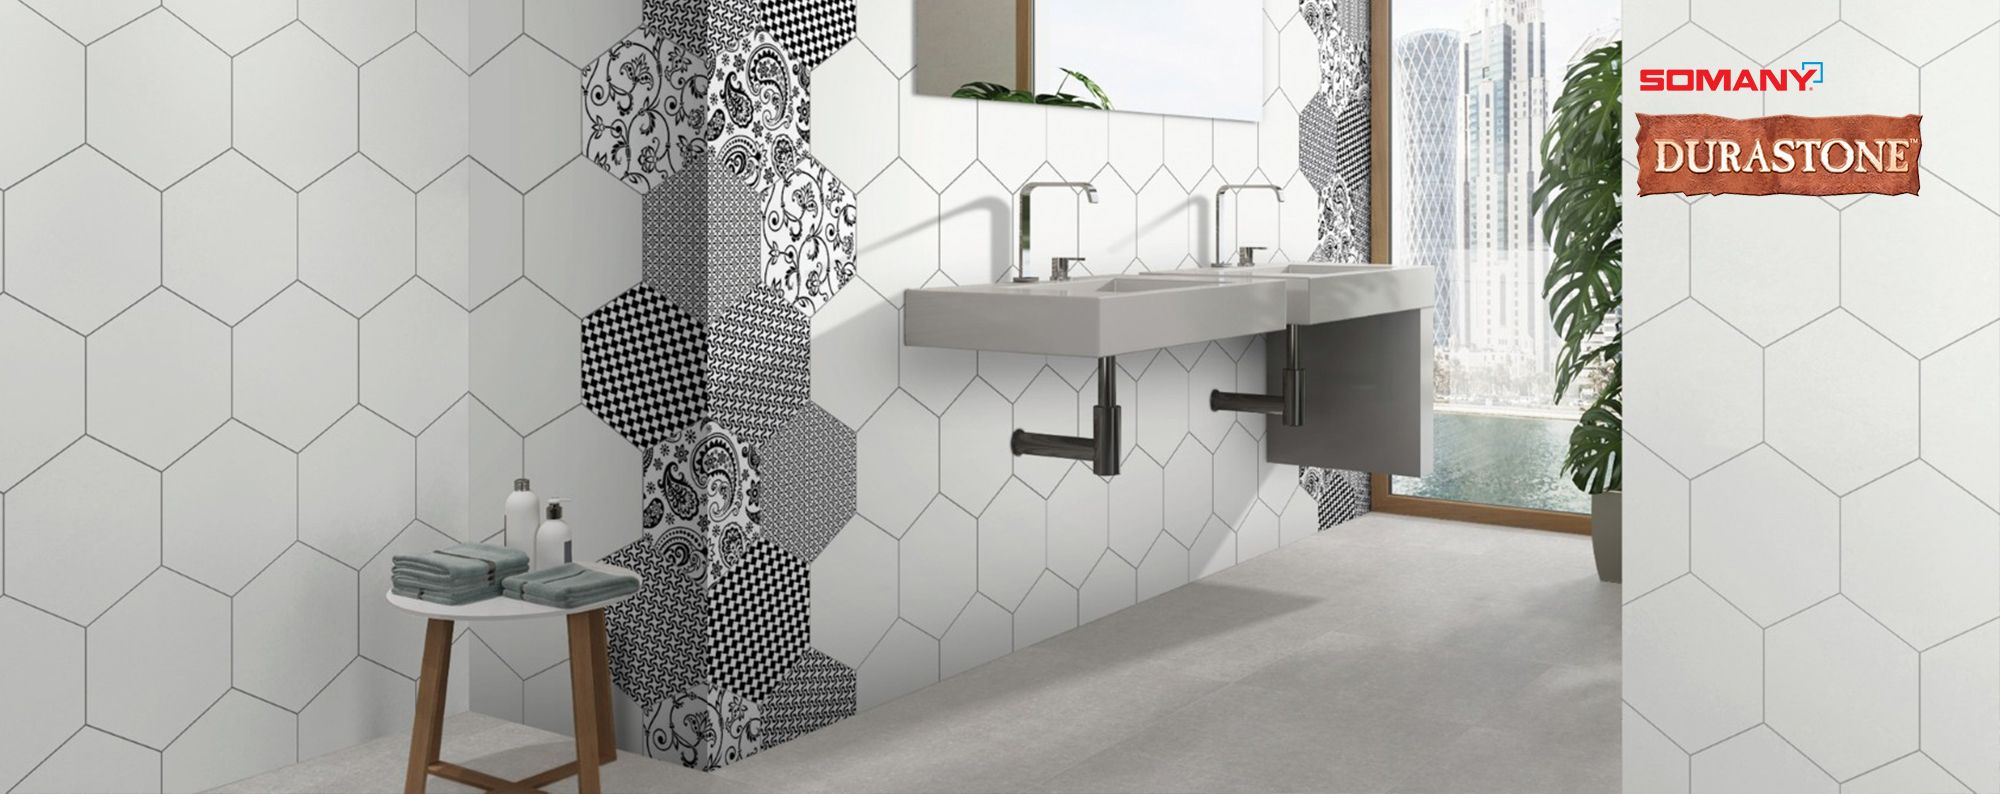 India's No. 5 Tile Comapny